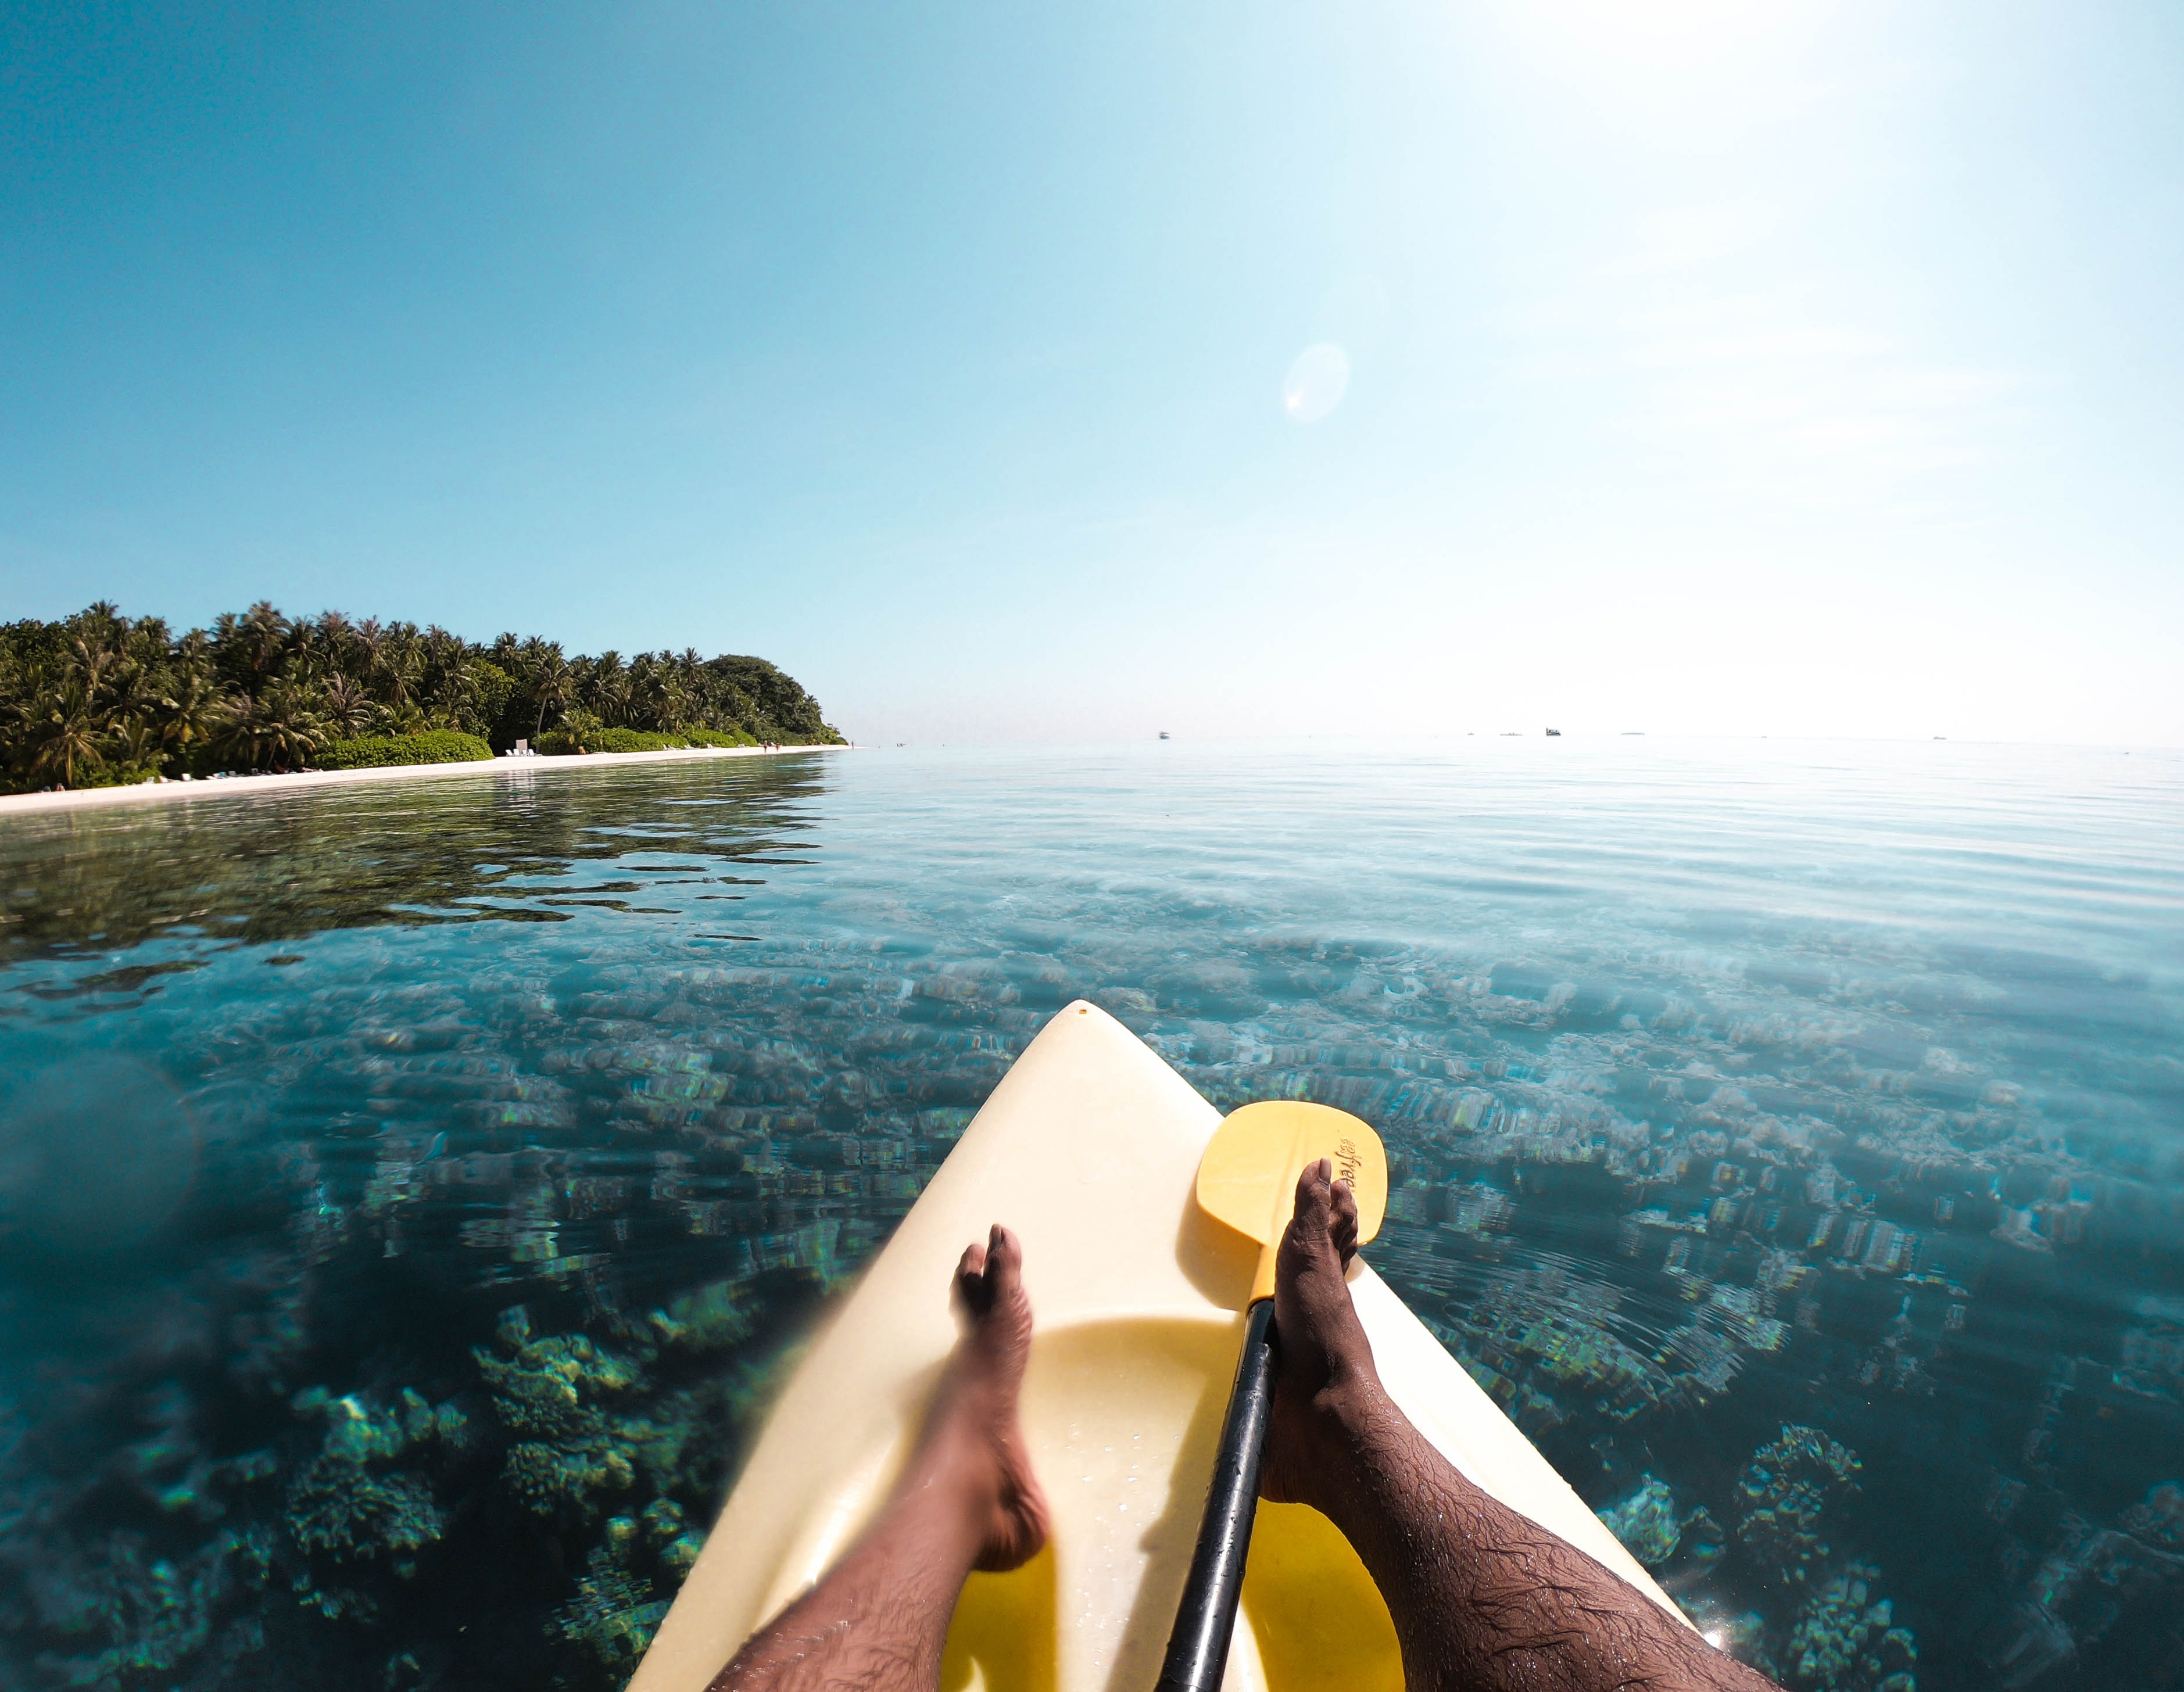 Watersports at Maldives, one of the best things to do on Maldives